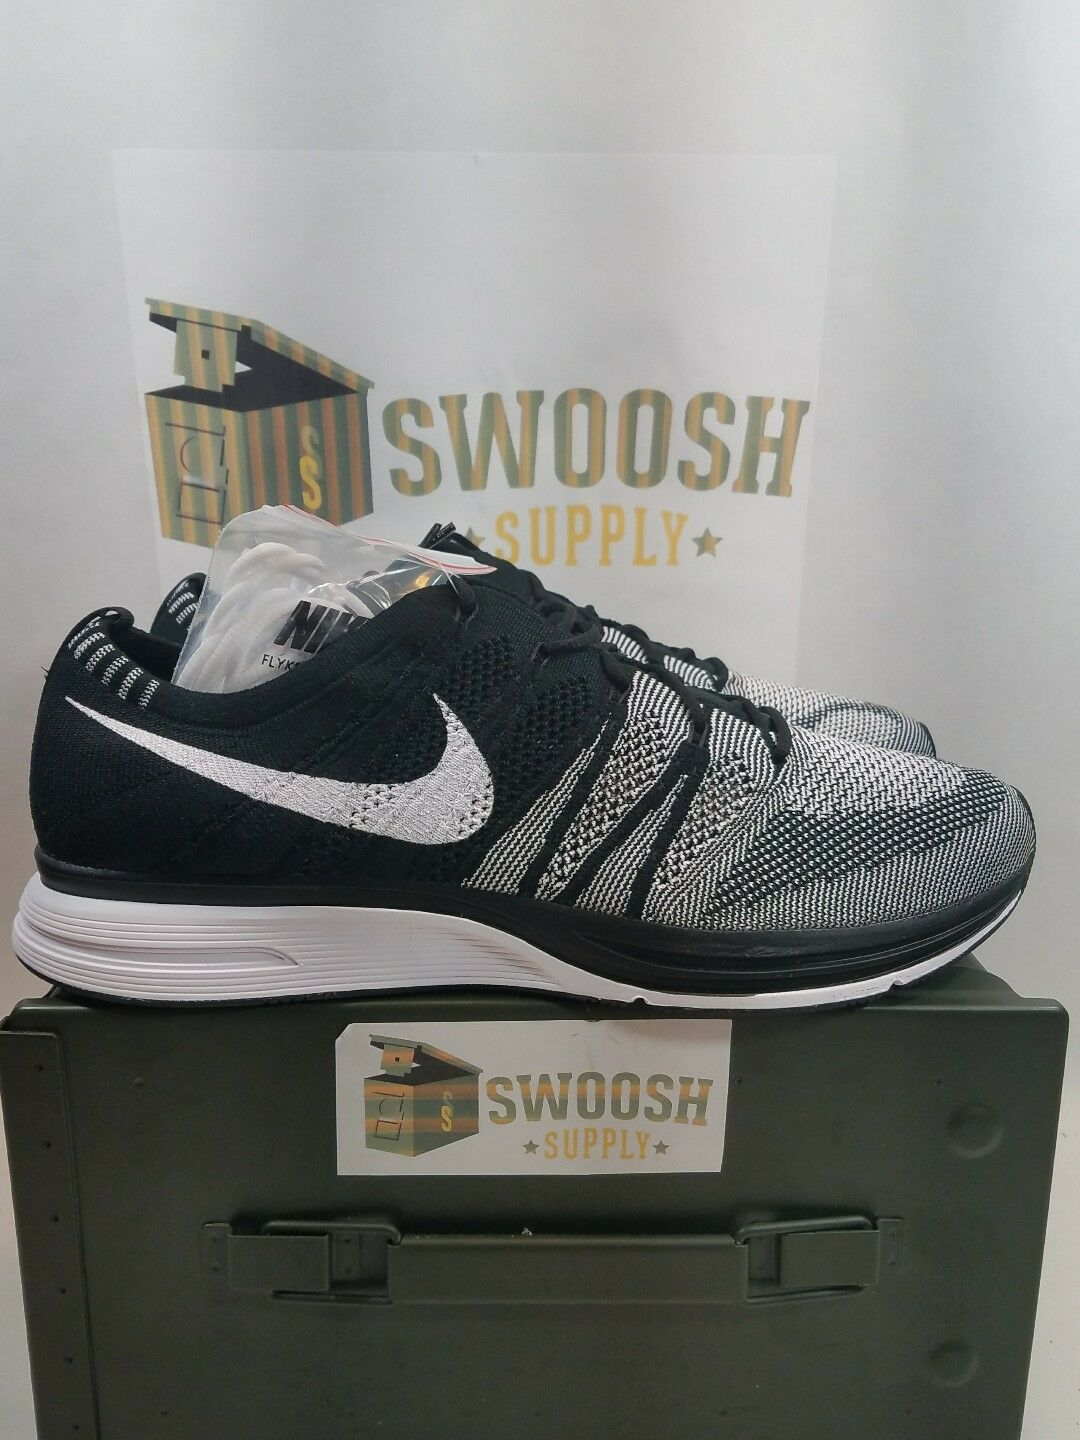 Nike Flyknit Trainer Running Black White Oreo 2018 AH8396-005 Comfortable Comfortable and good-looking